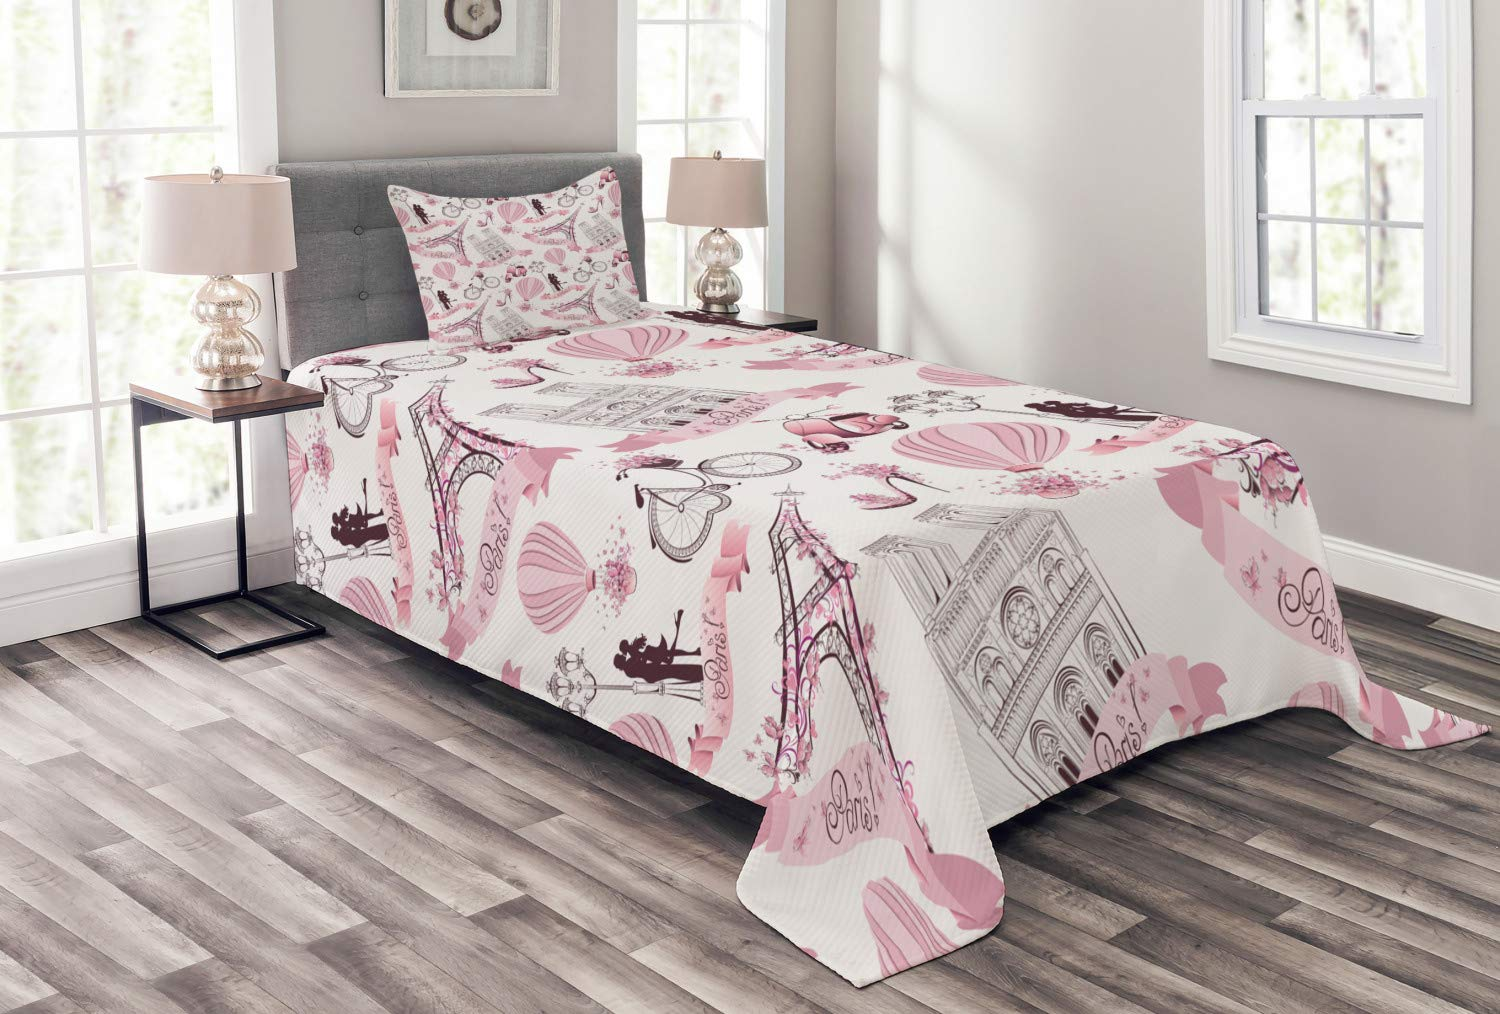 Ambesonne Eiffel Tower Bedspread, Travel in Paris Theme Honeymoon Flowers Romance Hot Air Balloon Bike, Decorative Quilted 2 Piece Coverlet Set with Pillow Sham, Twin Size, Pale Pink